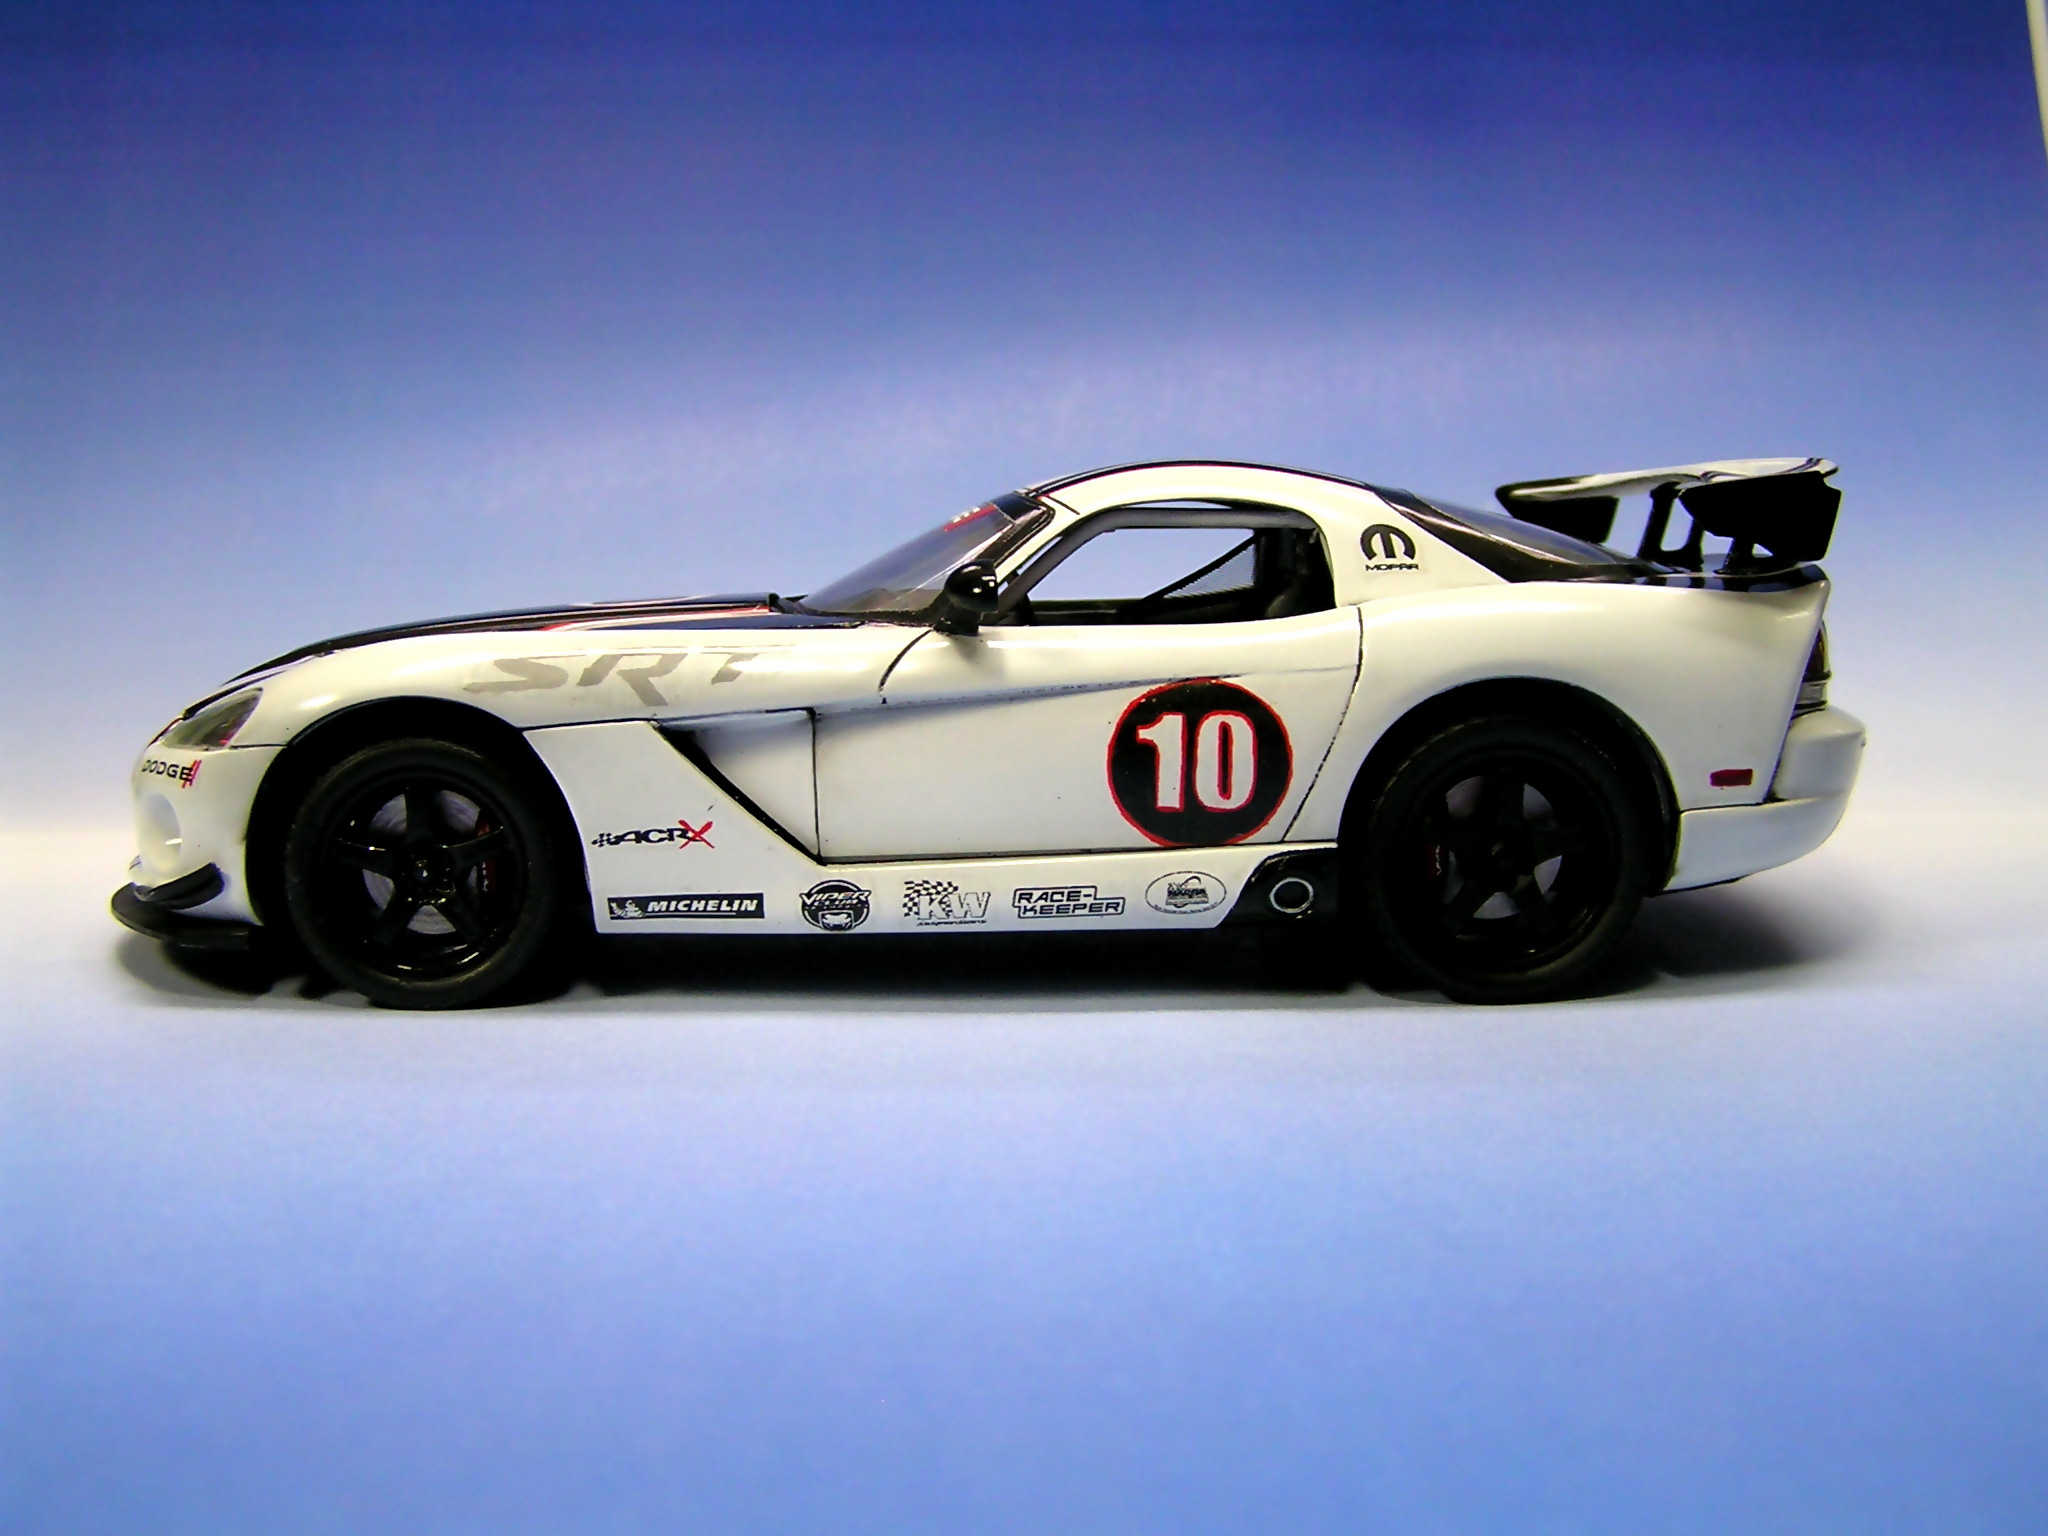 model Dodge Viper srt10 acr-x 2010 Revell 1/25